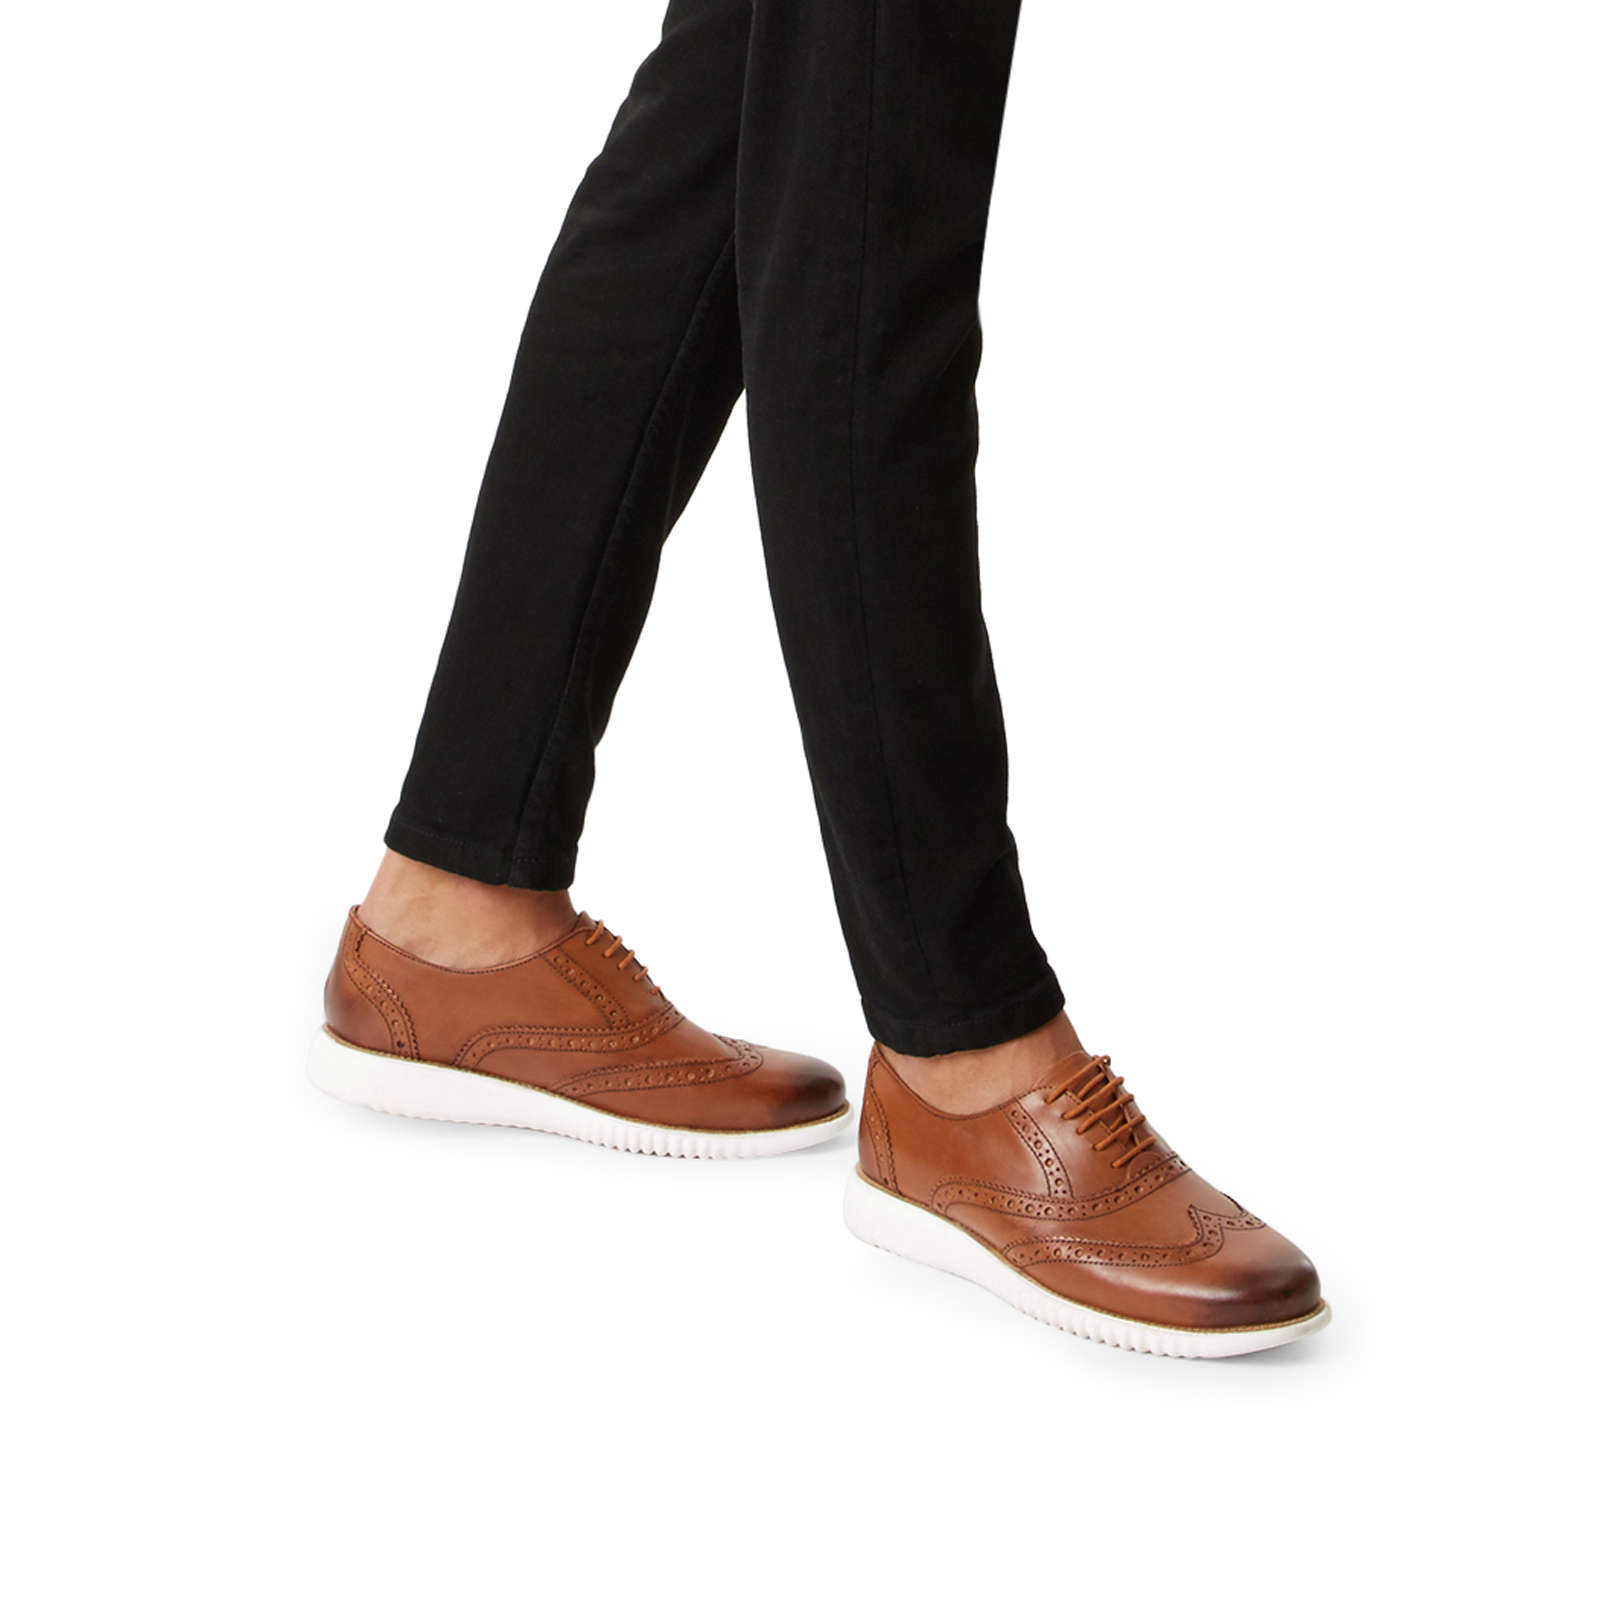 Men's Casual Boots | Kurt Geiger